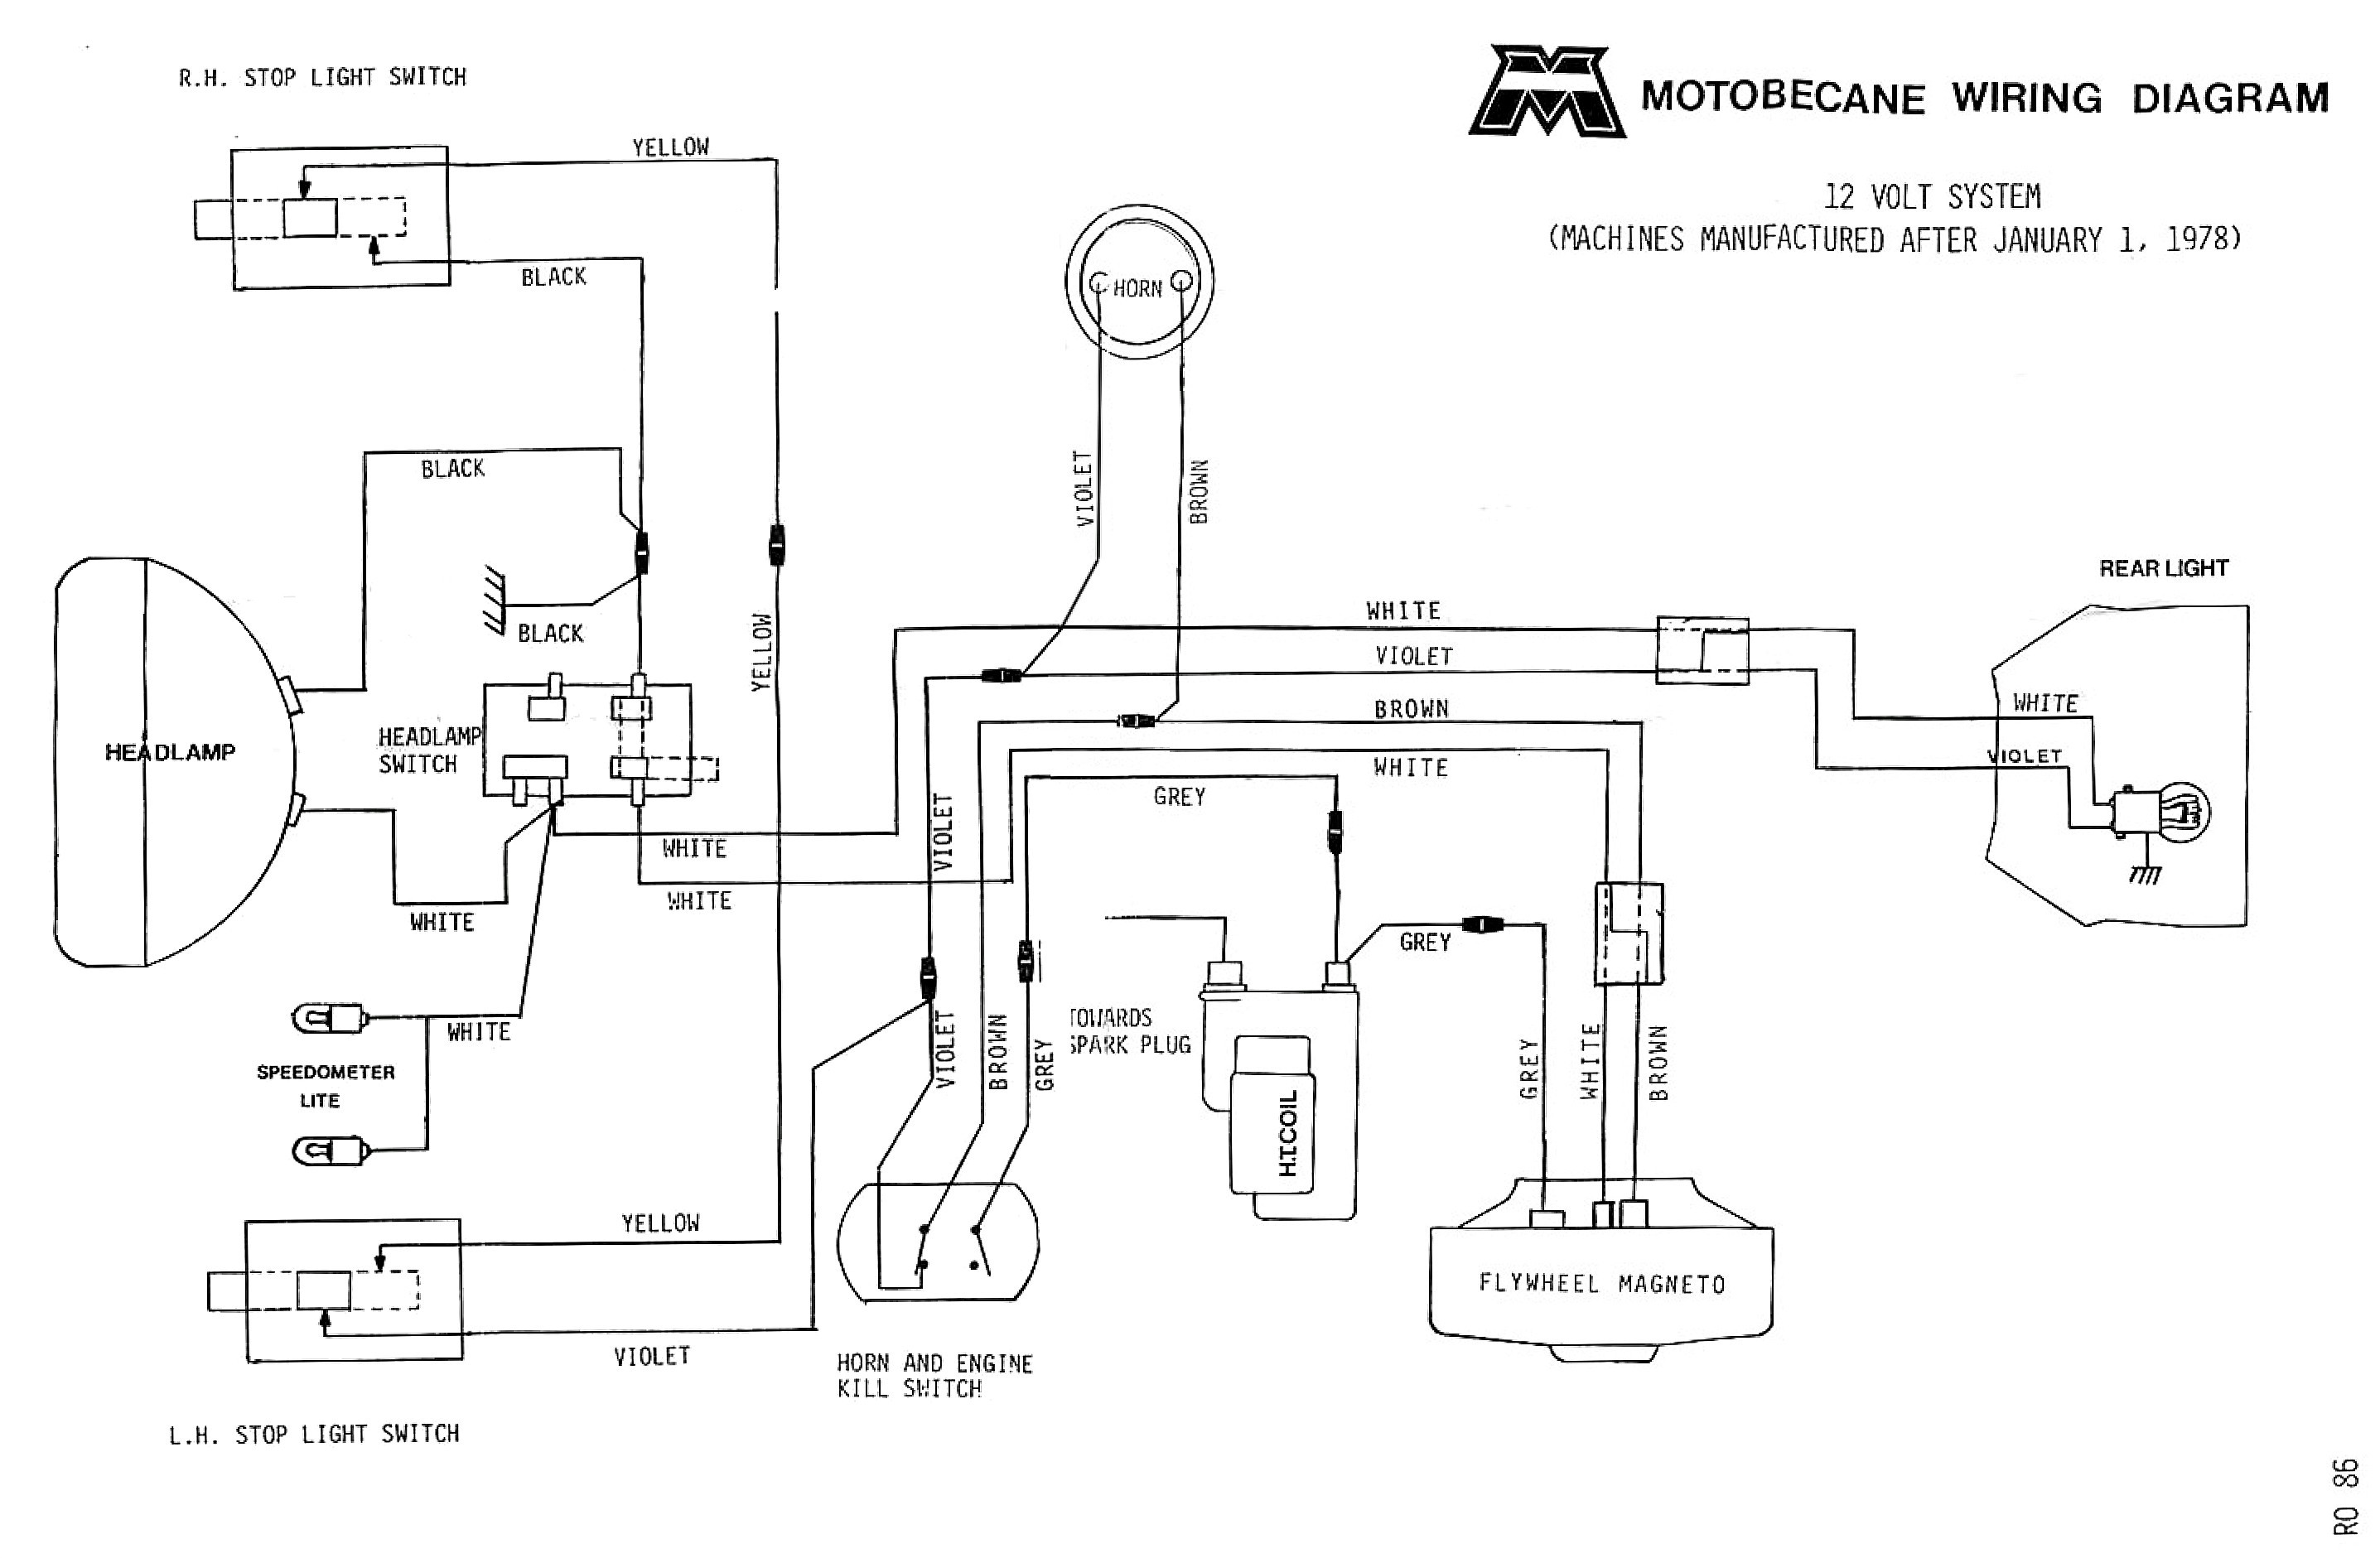 Vf 8752 Ford Tractor Reference Ford Wiring Diagram Schematic Diagram Wiring Download Diagram